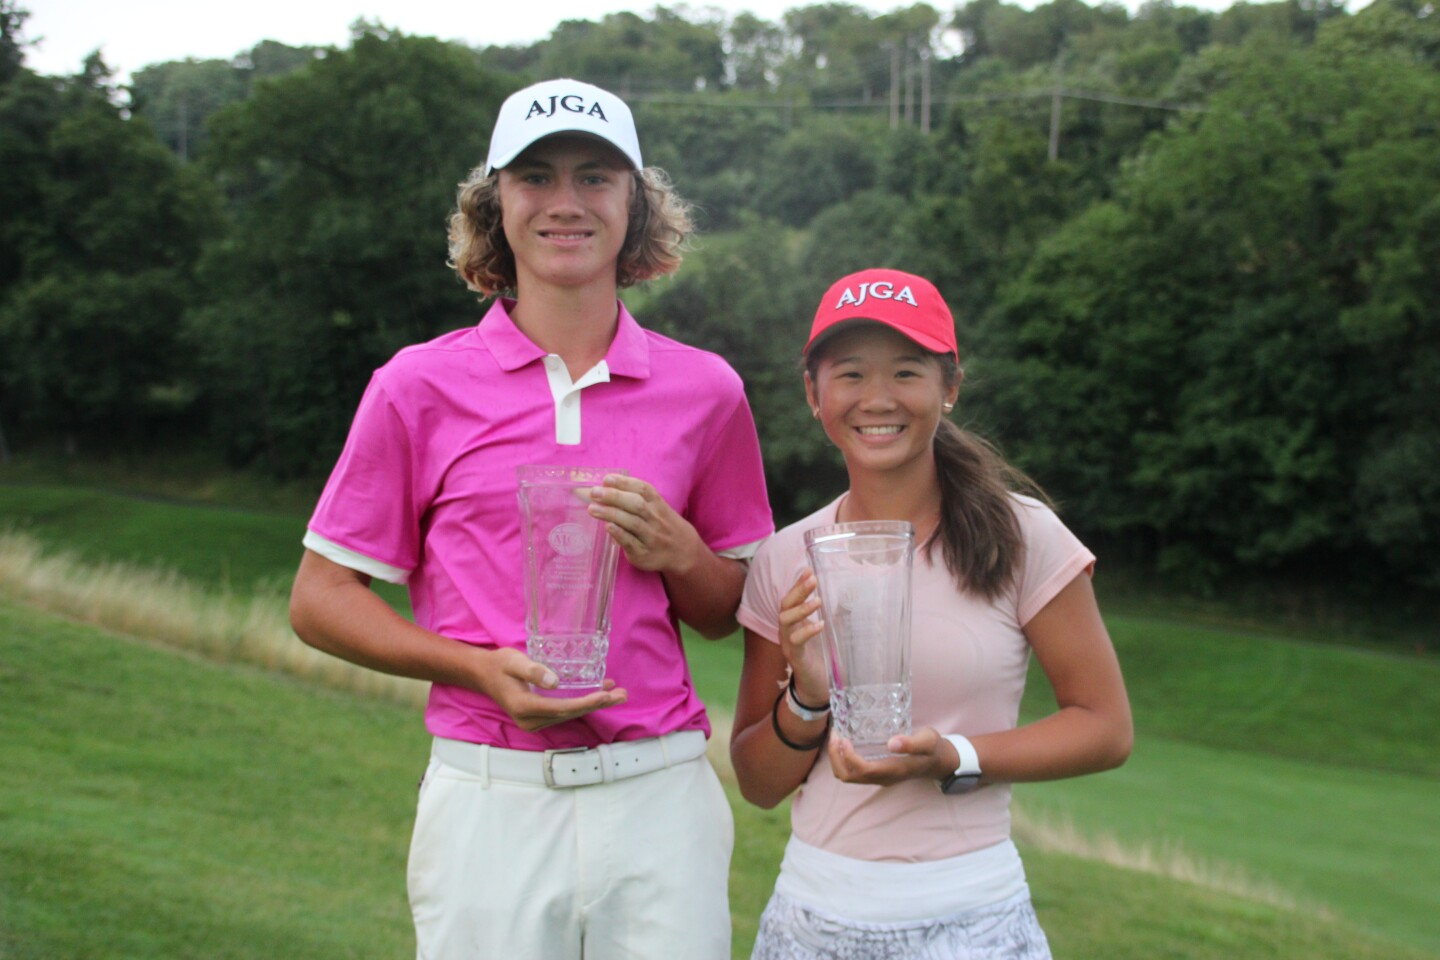 Parr, Li Champion Photo Outside Together - 2019 - AJGA Junior at Southpointe presented by DICK'S Sporting Goods.JPG